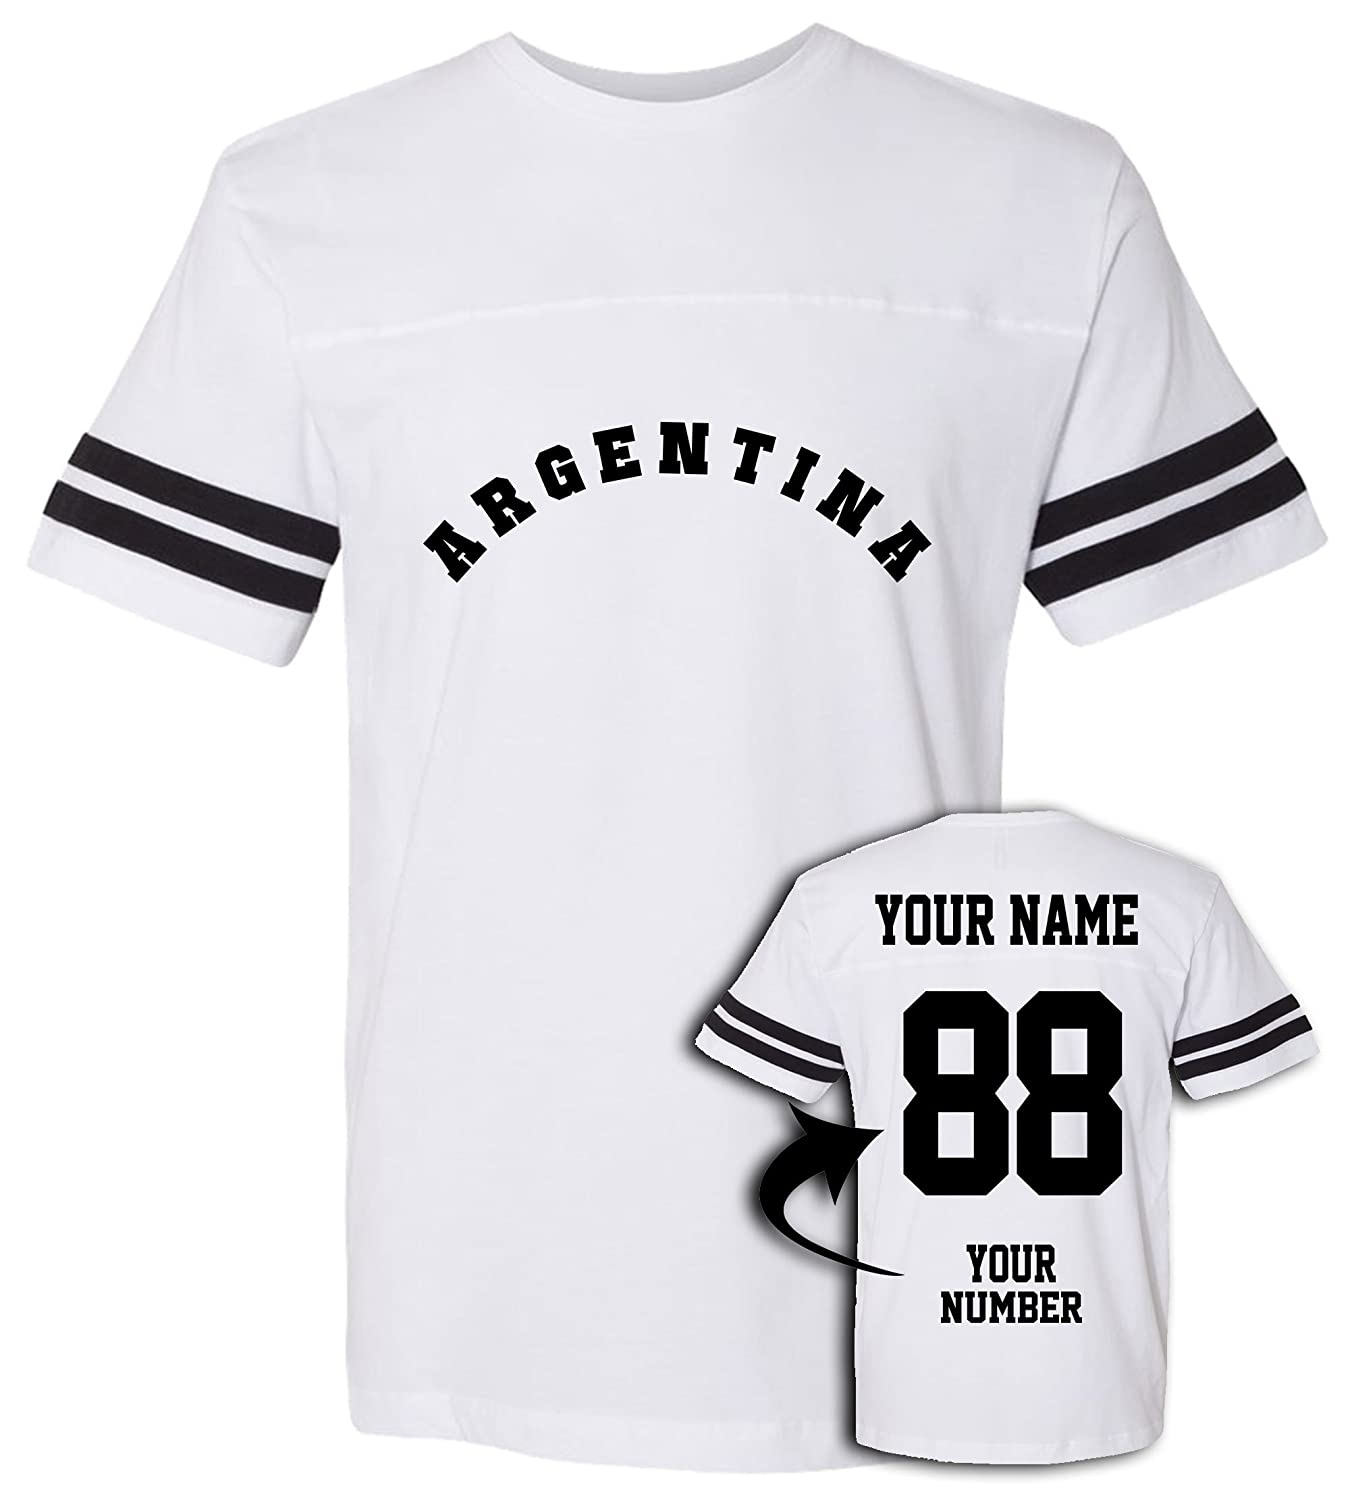 7134e50cd75 Amazon.com  Argentina Football Jersey T Shirts